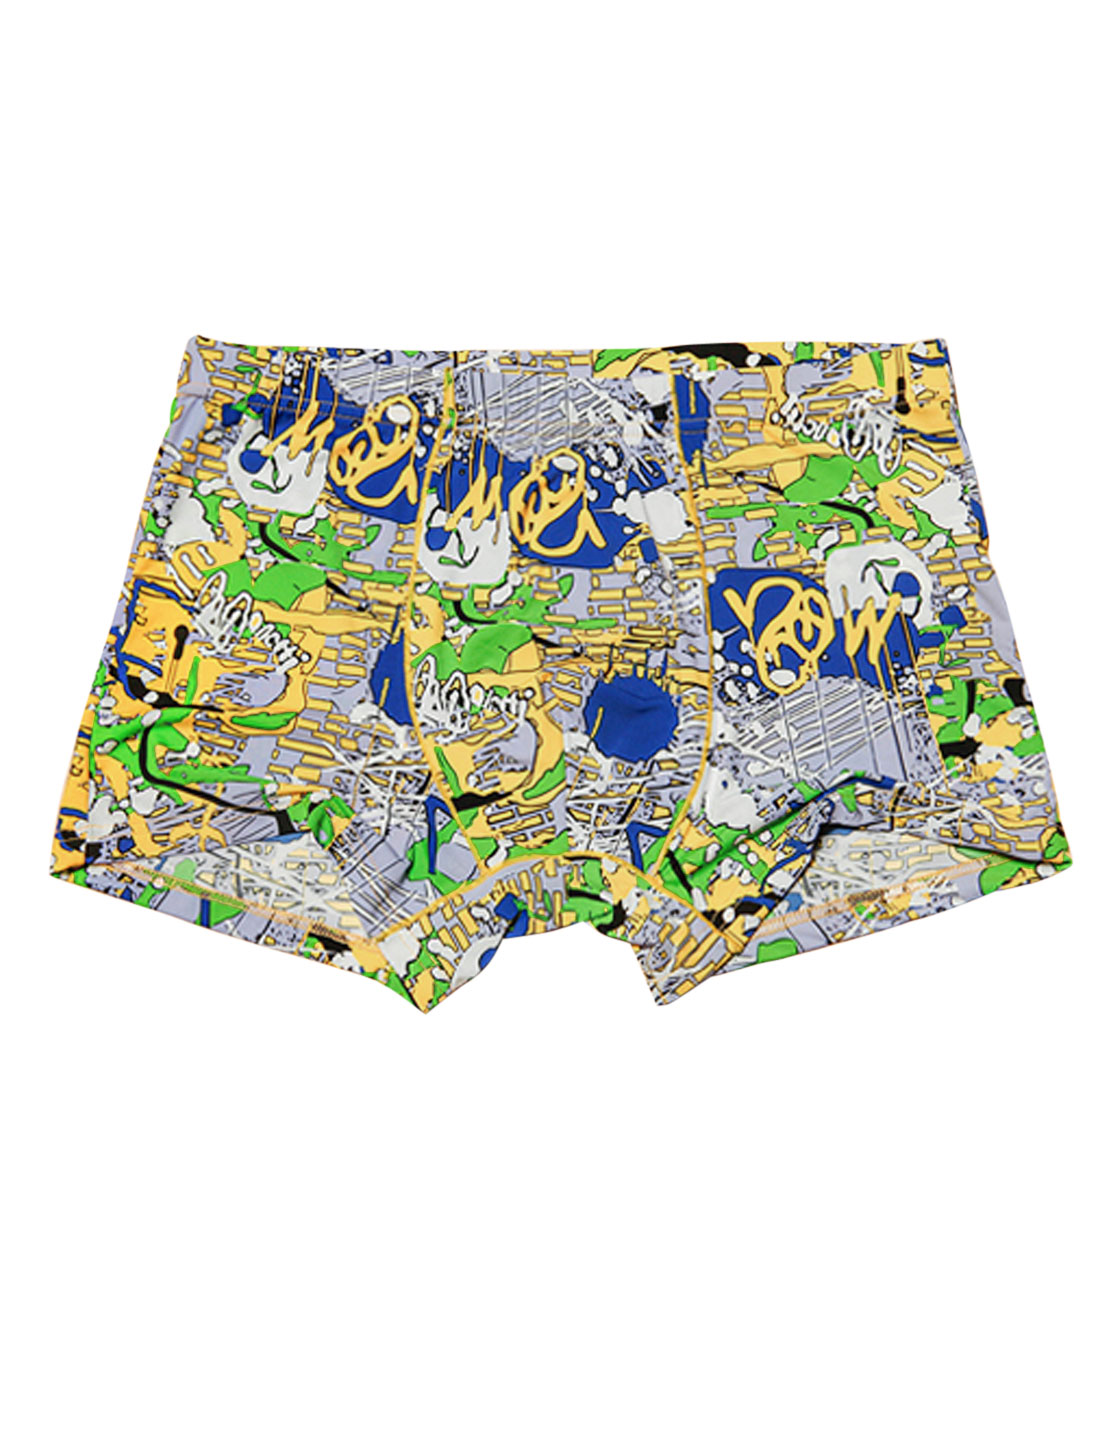 Newly Novelty Print Stretchy Boxer Briefs for Men Multicolor W30